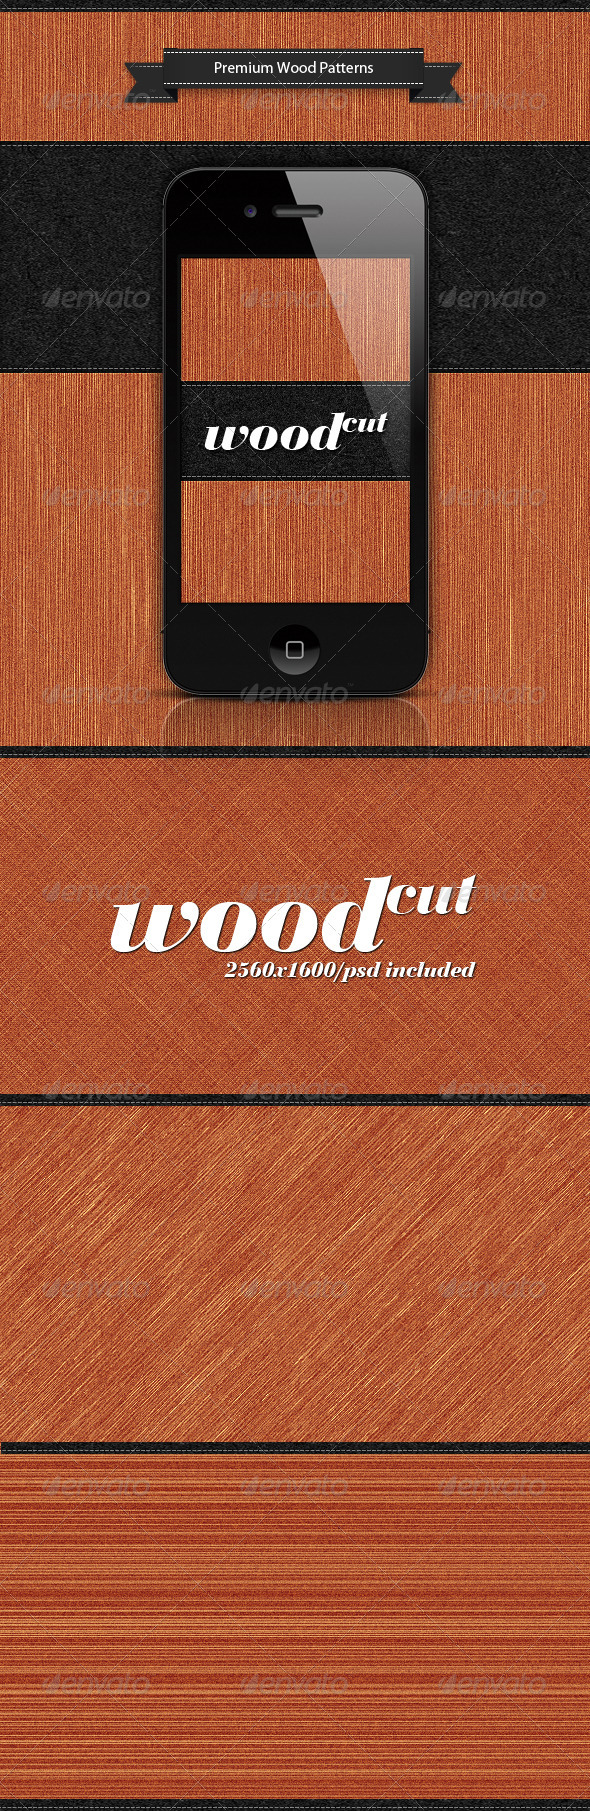 Wood Cut - Patterns Backgrounds